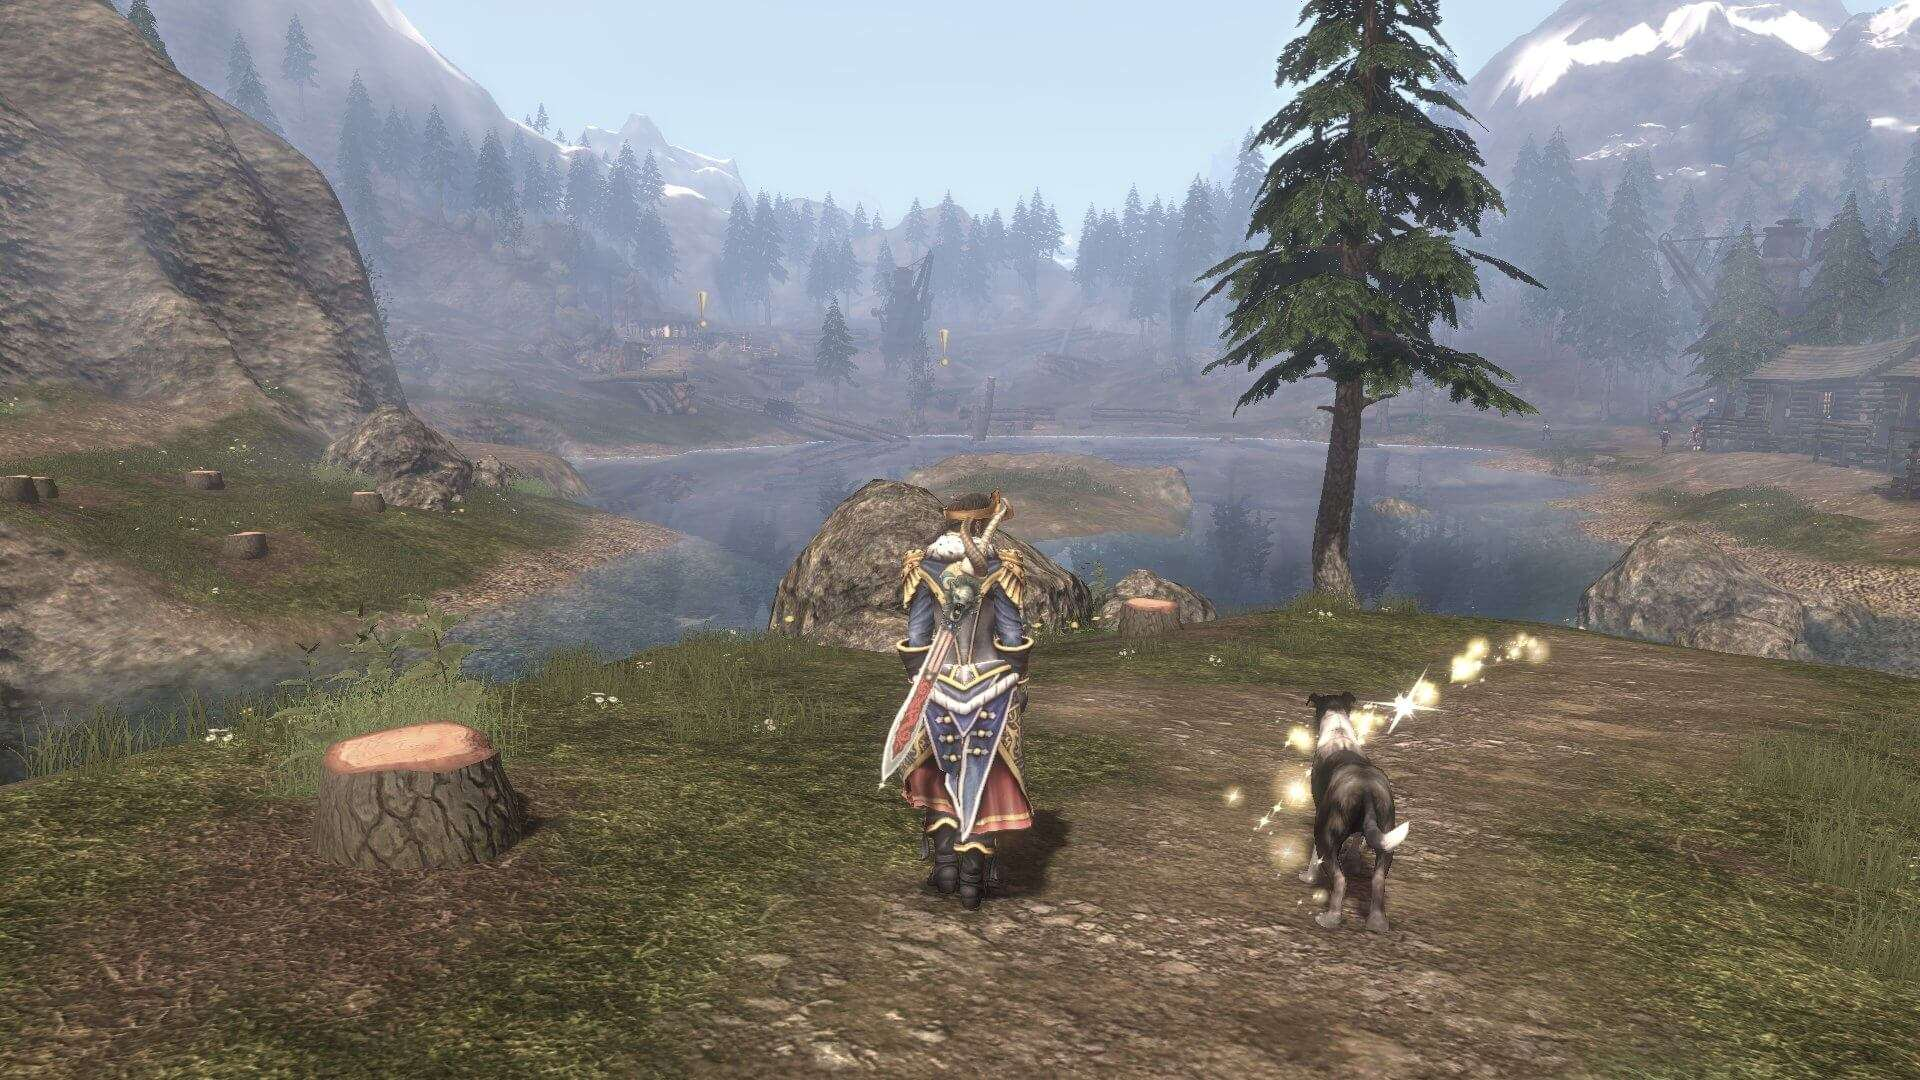 Fable 3 PC 1 20 Years Of Games: A Look Back At Lionhead Studios